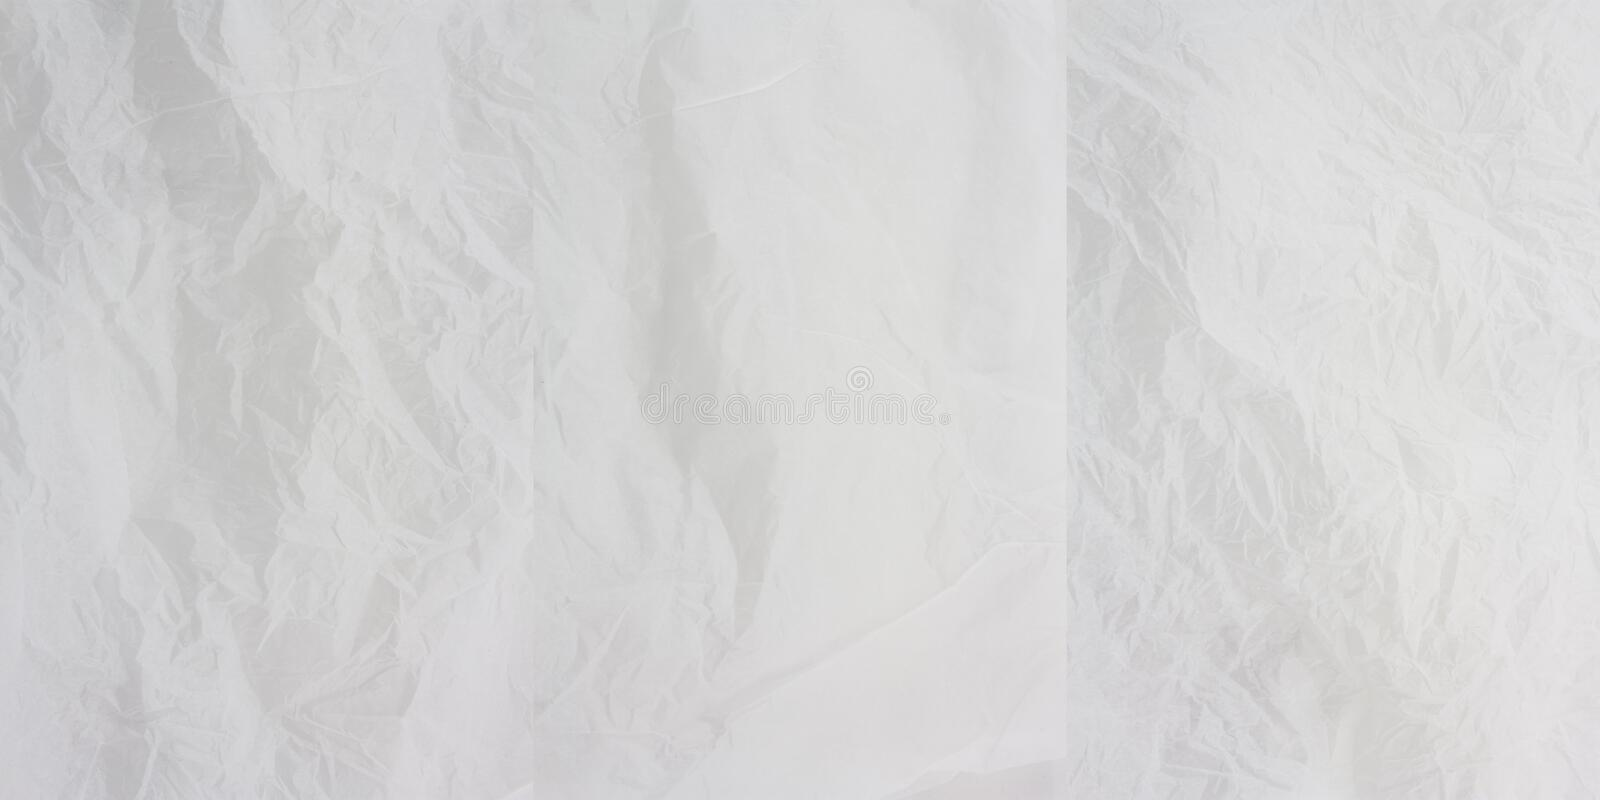 White Creased Paper x 3 royalty free stock photography